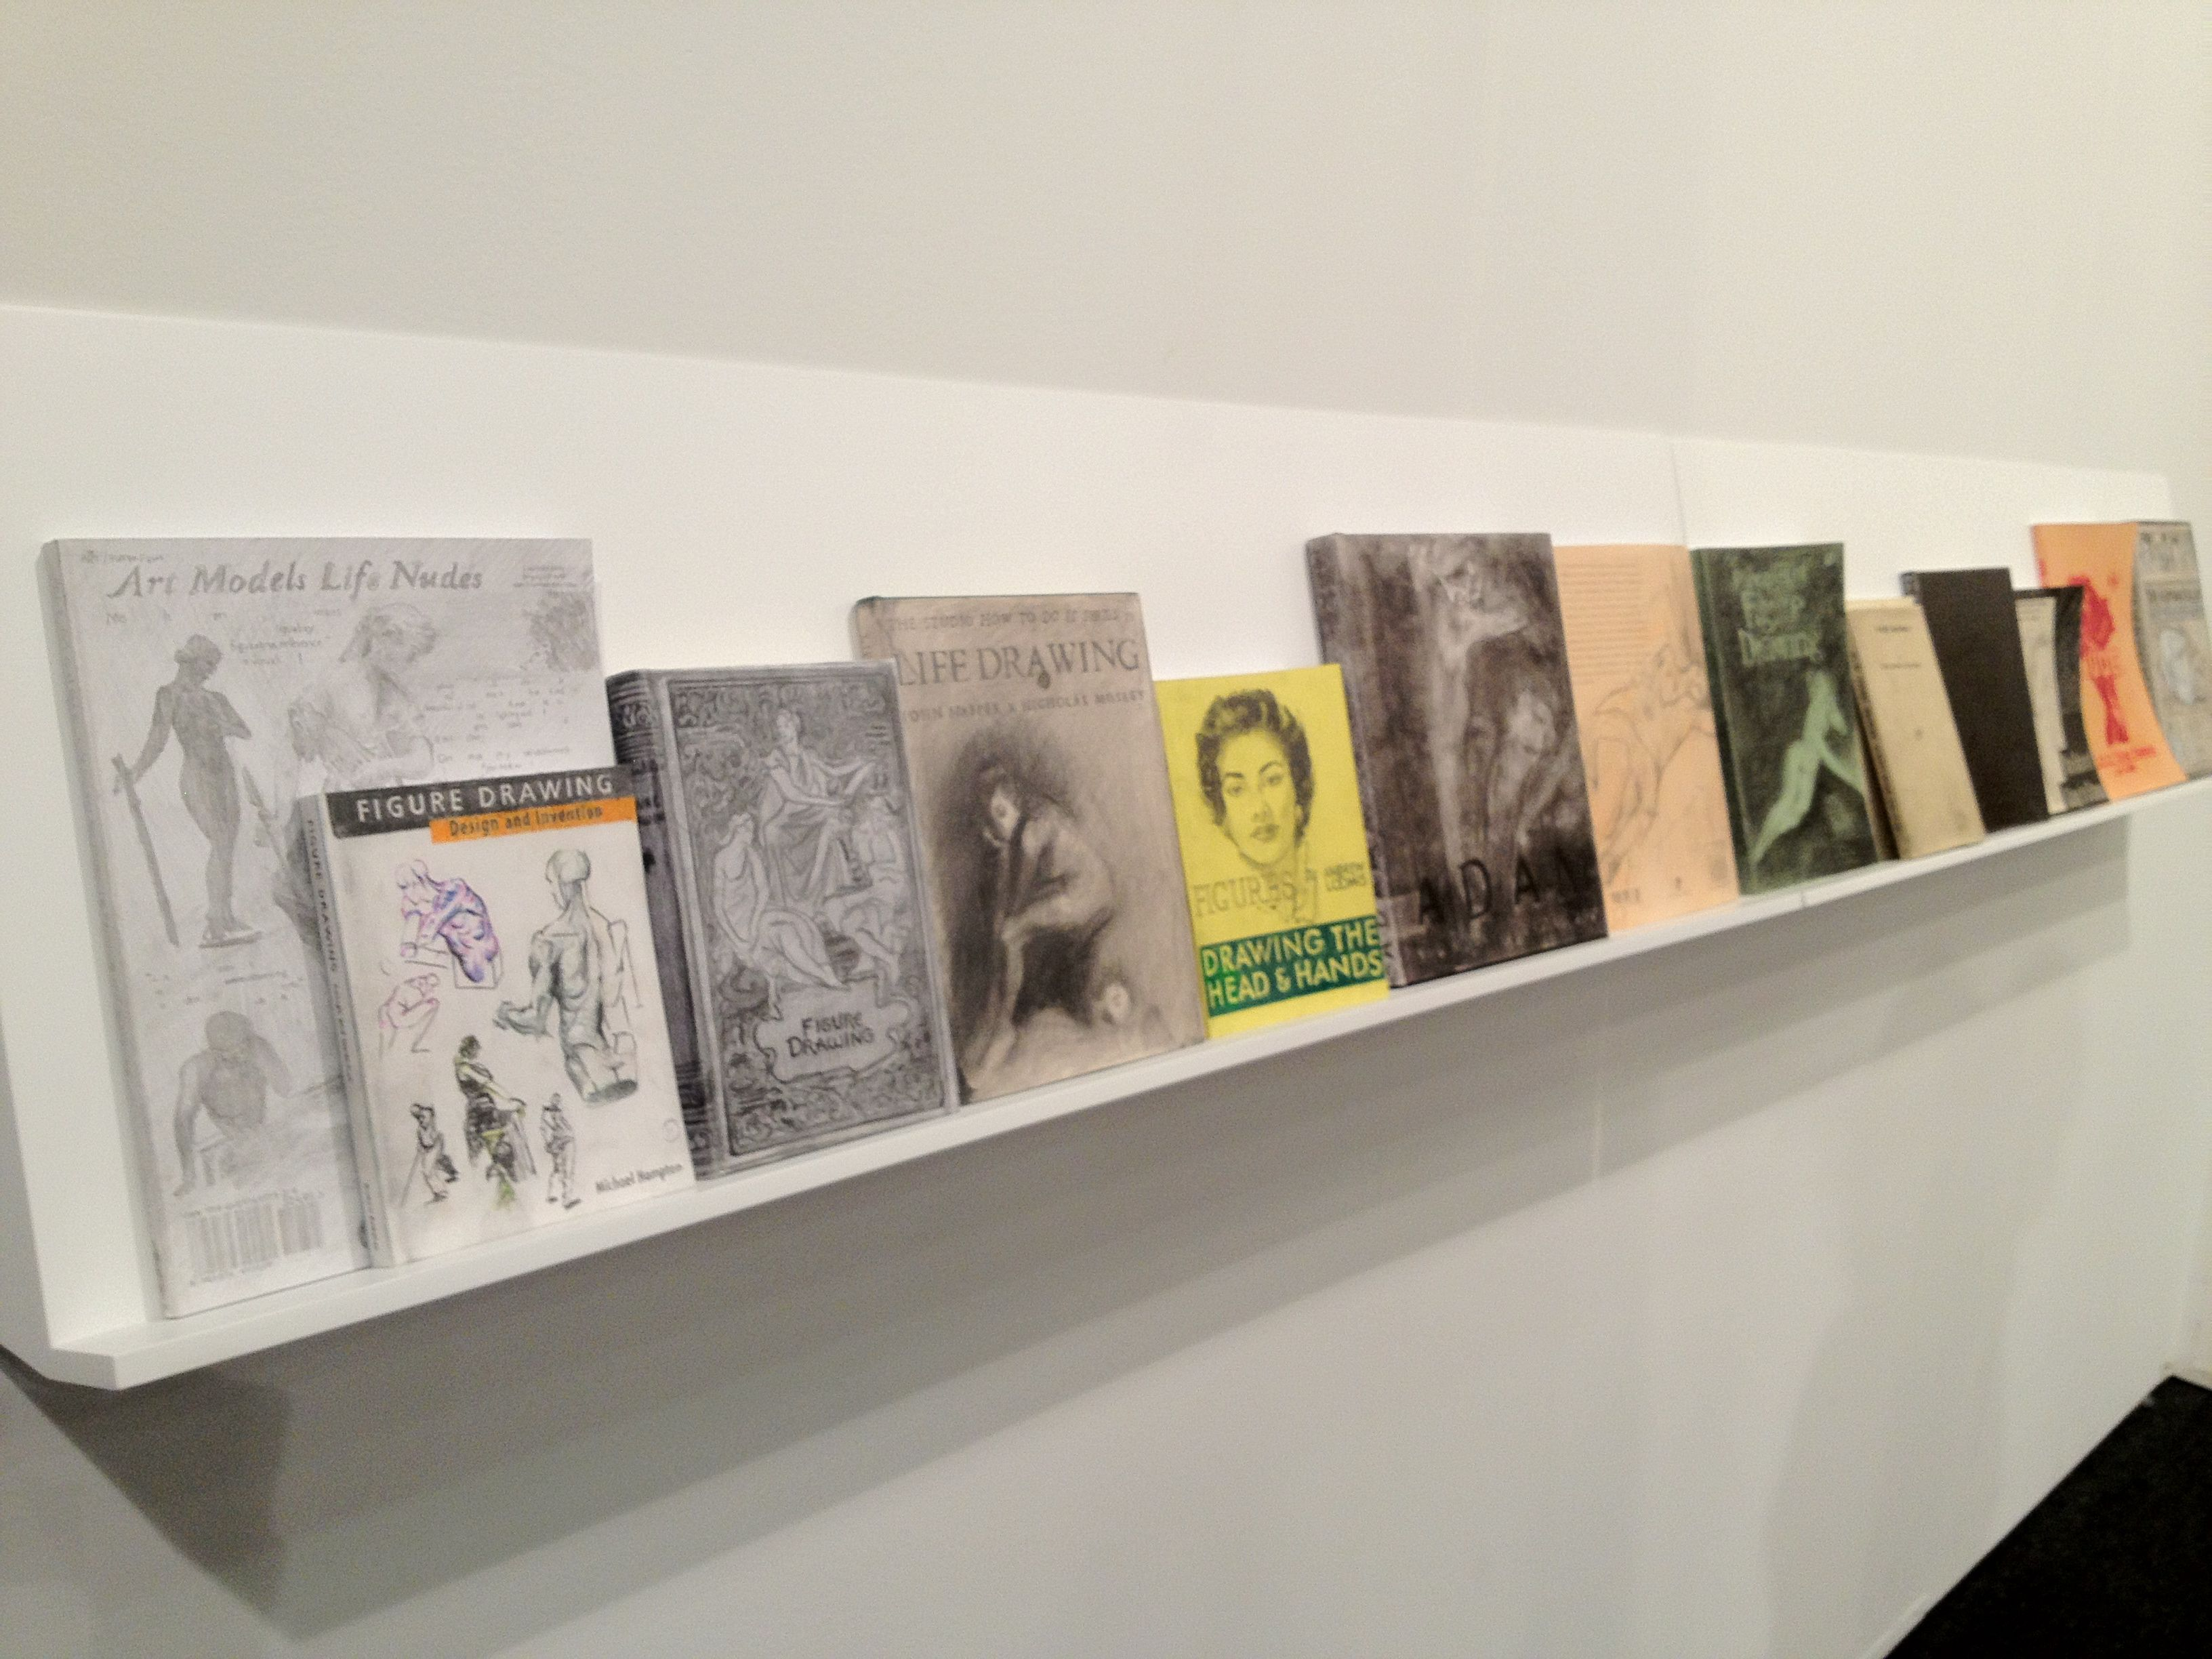 Art Los Angeles Contemporary, Life Drawing Drawings, i libri a mano di Fiona  Banner